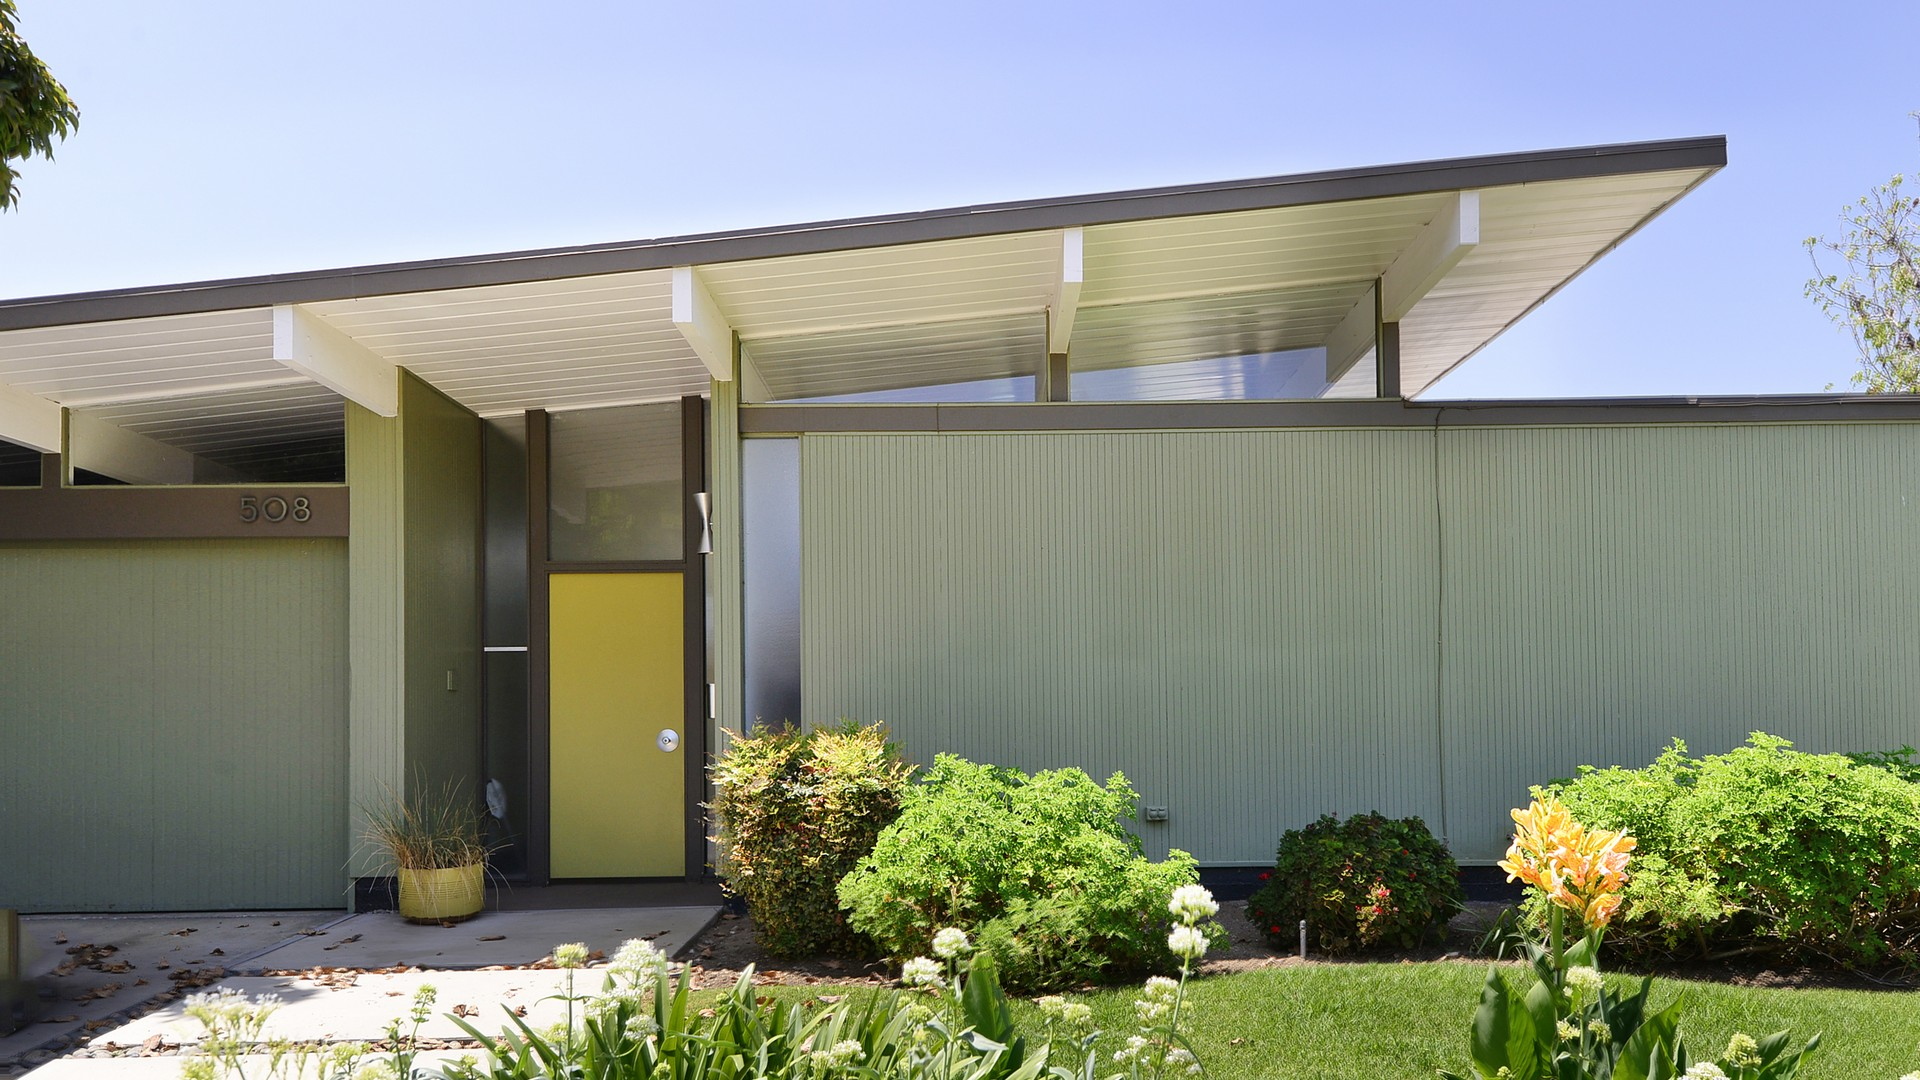 eichler homes in southern california | socal eichlers for sale